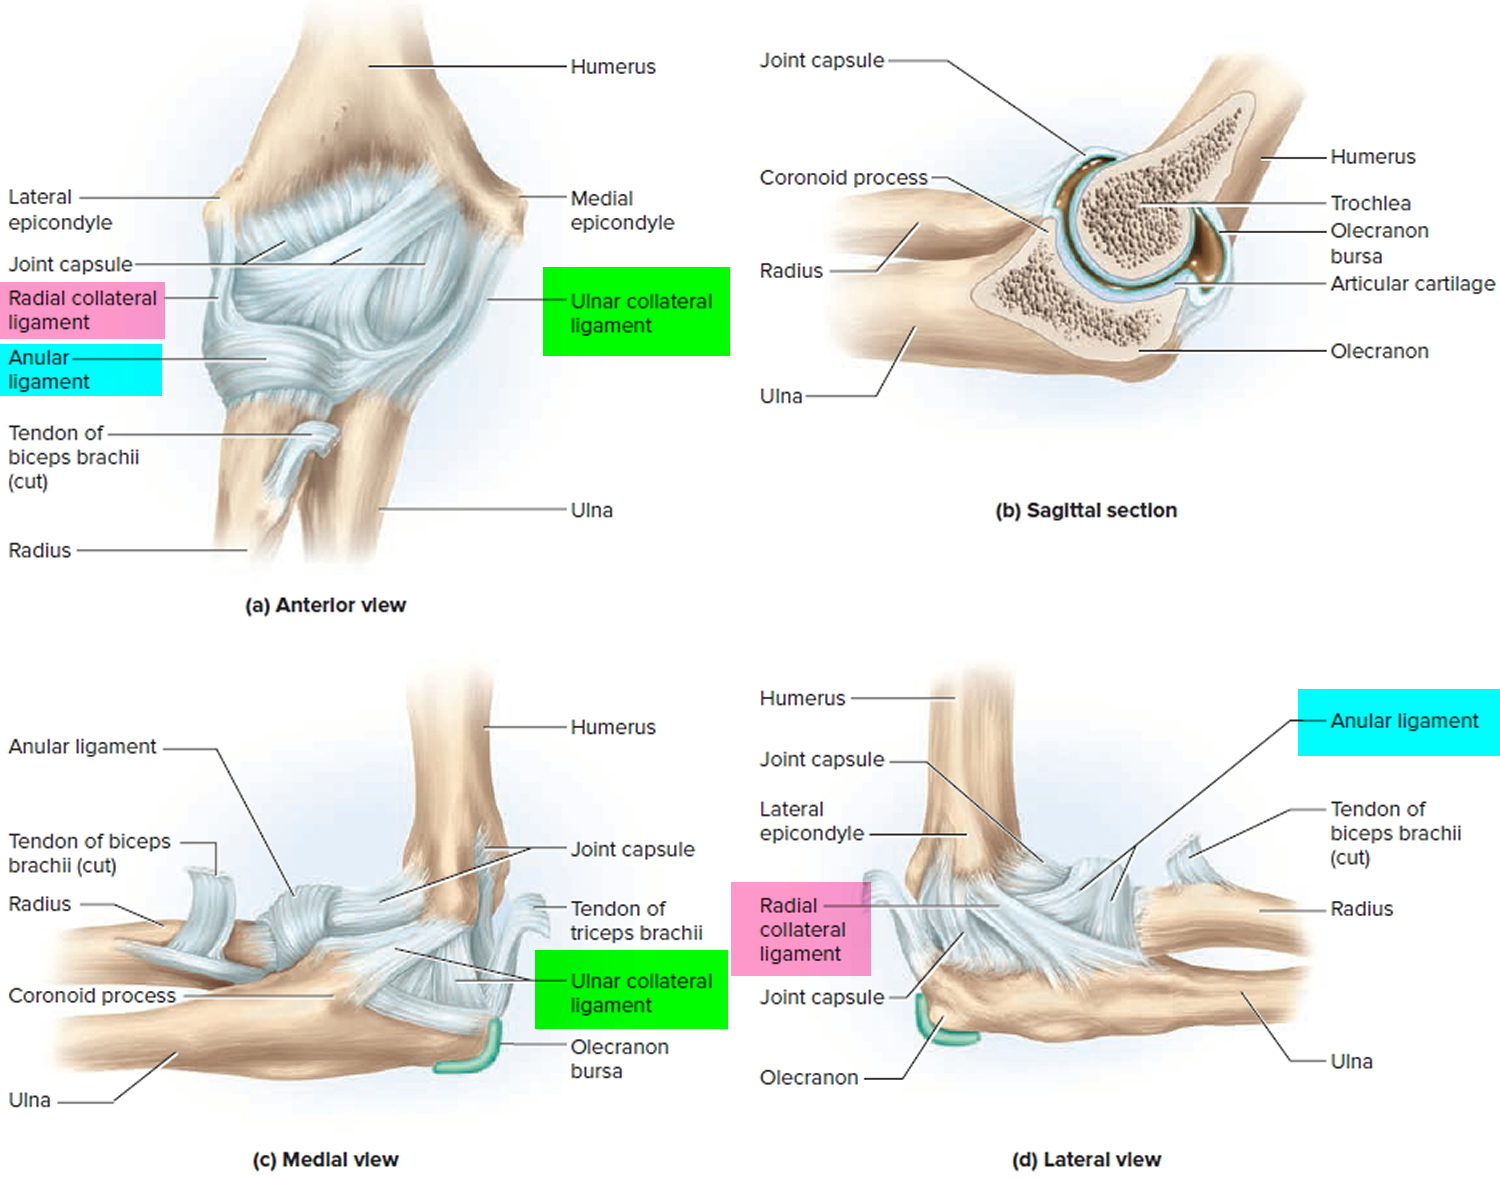 Ligaments Thumb Shoulder Elbow Hip Knee And Ankle Ligaments